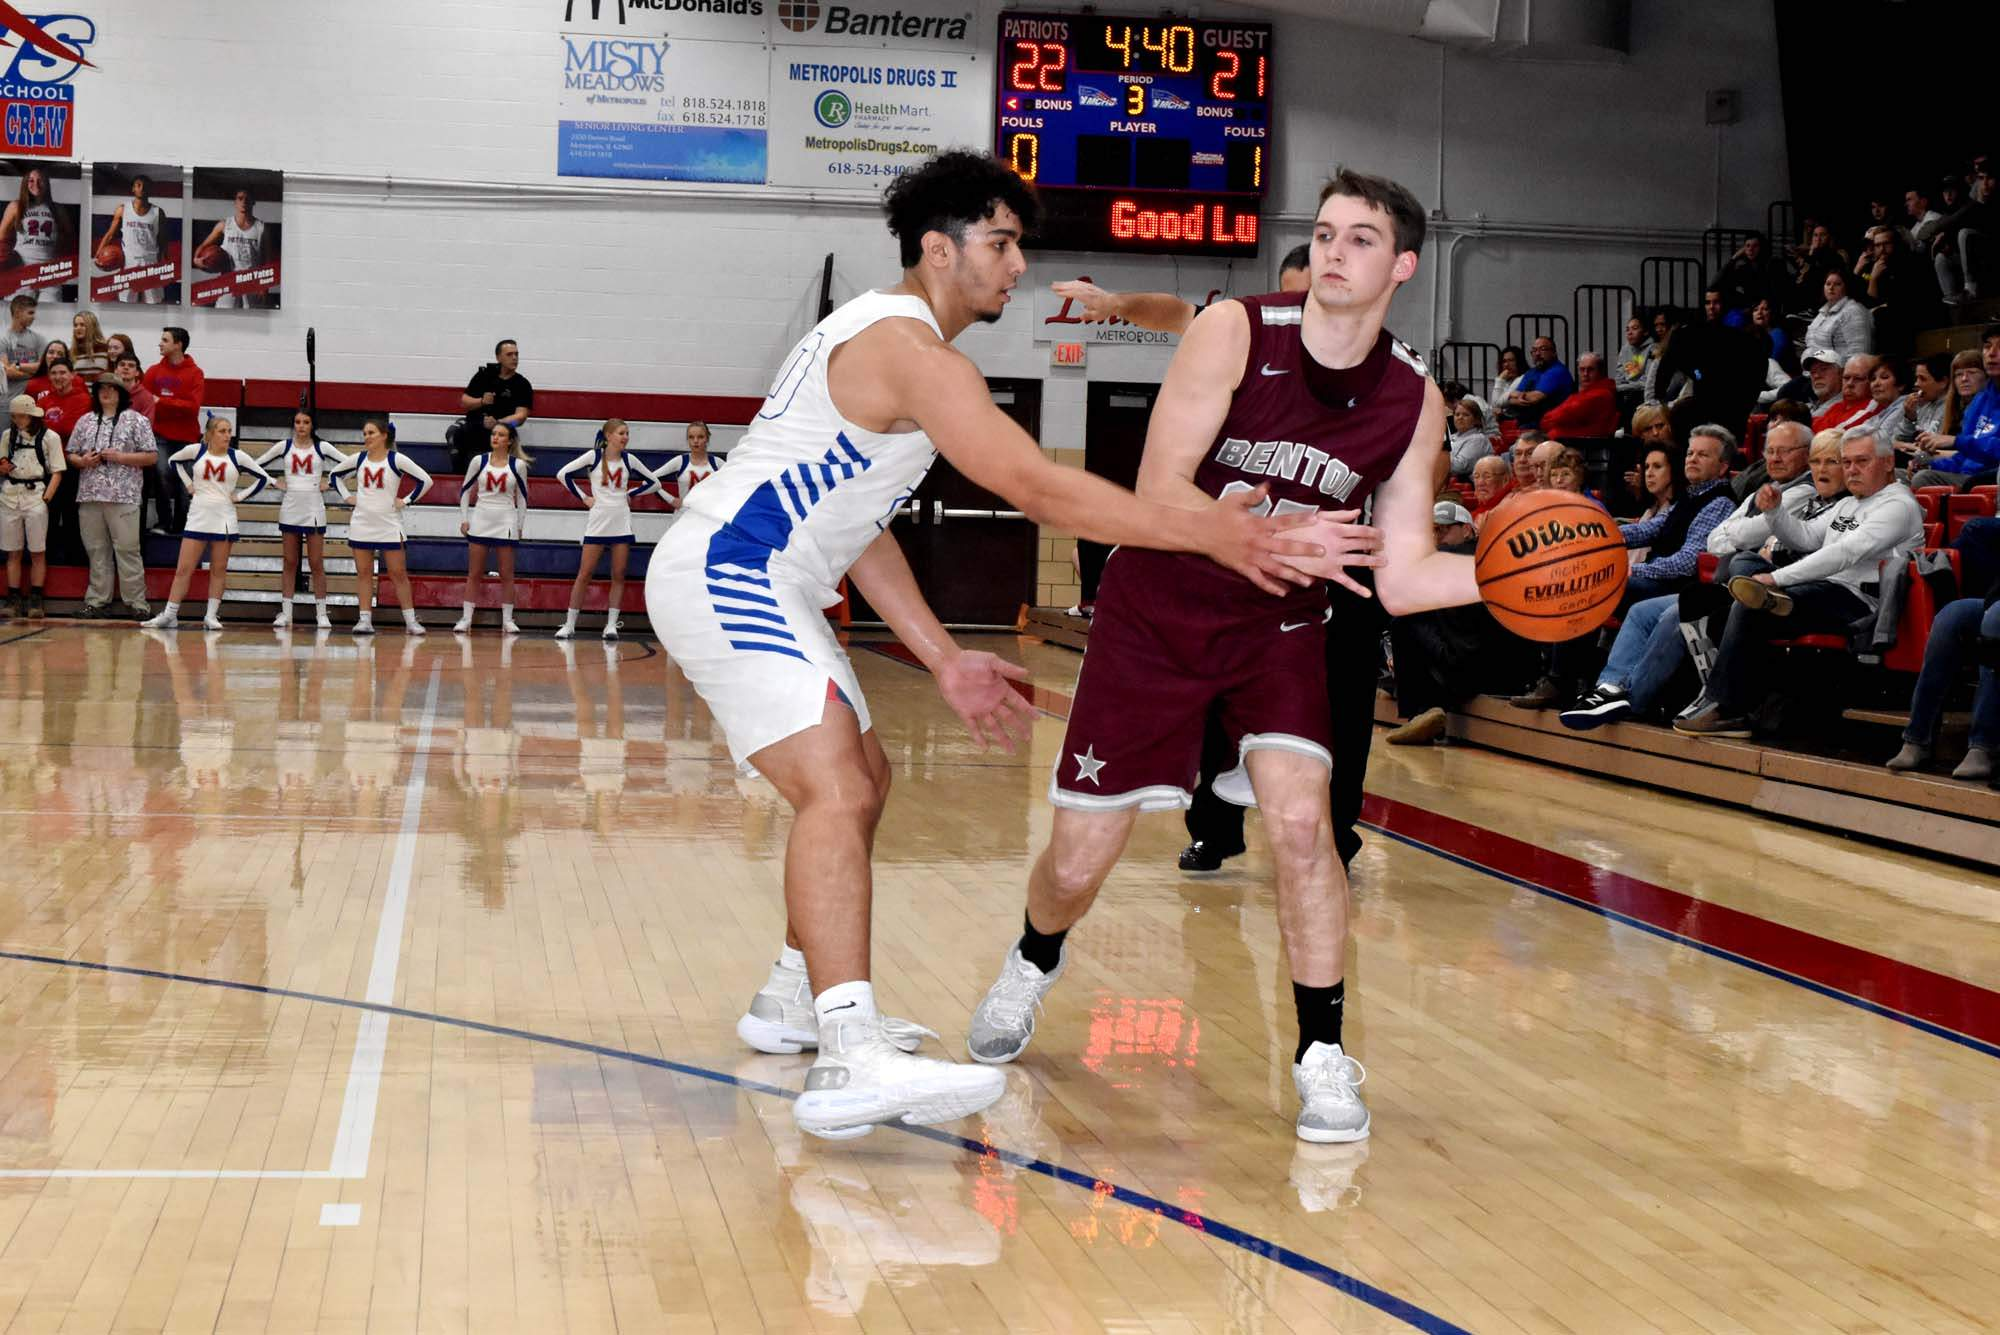 Benton High School's Mason Wills makes a pass to a teammate on the baseline during the Rangers' game against Massac County on Friday night. Wills hit 3-of-4 free throws in the final two minutes of the game to seal the victory.